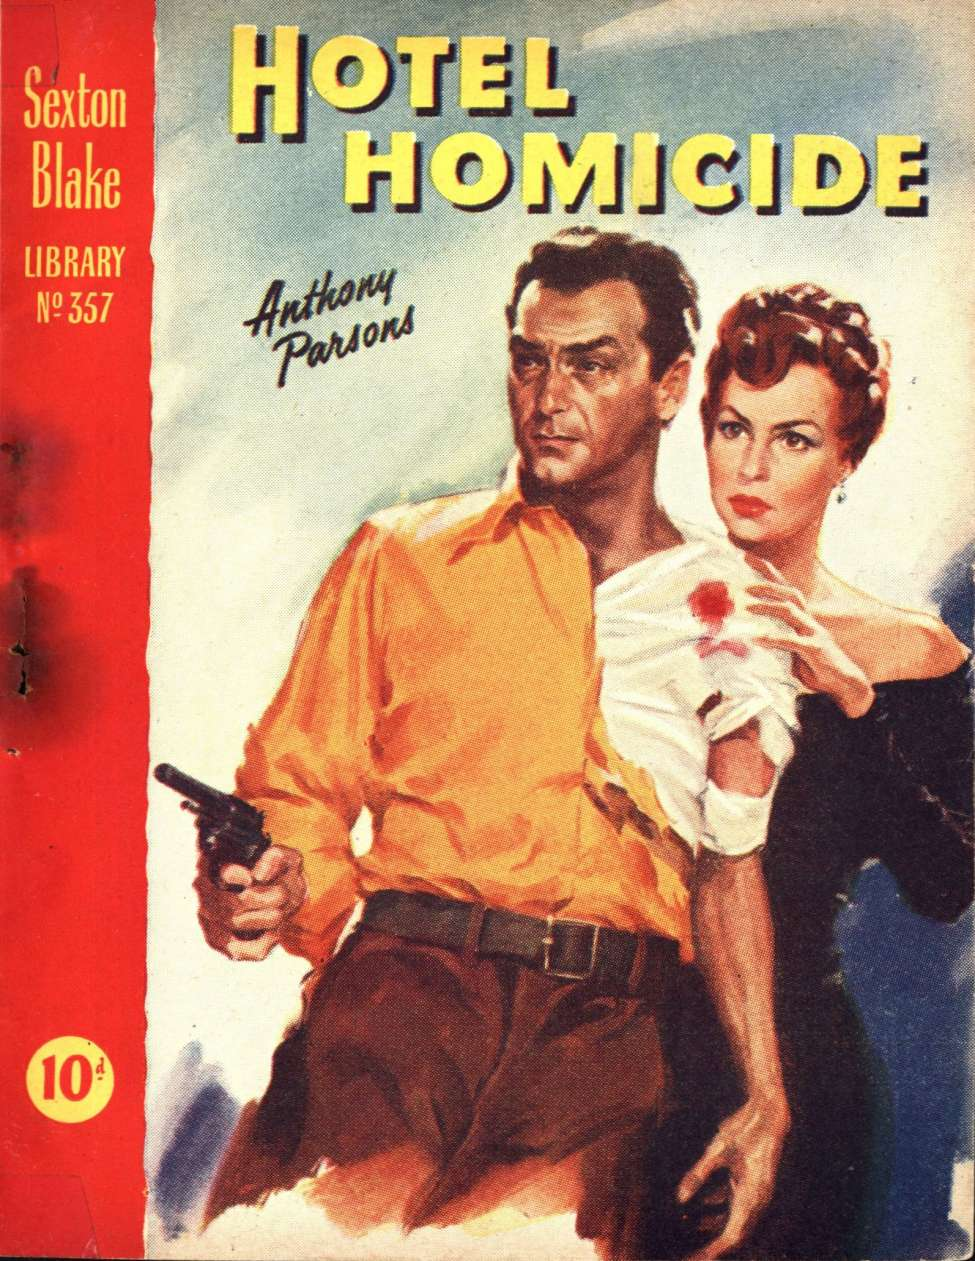 Comic Book Cover For Sexton Blake Library S3 357 - Hotel Homicide